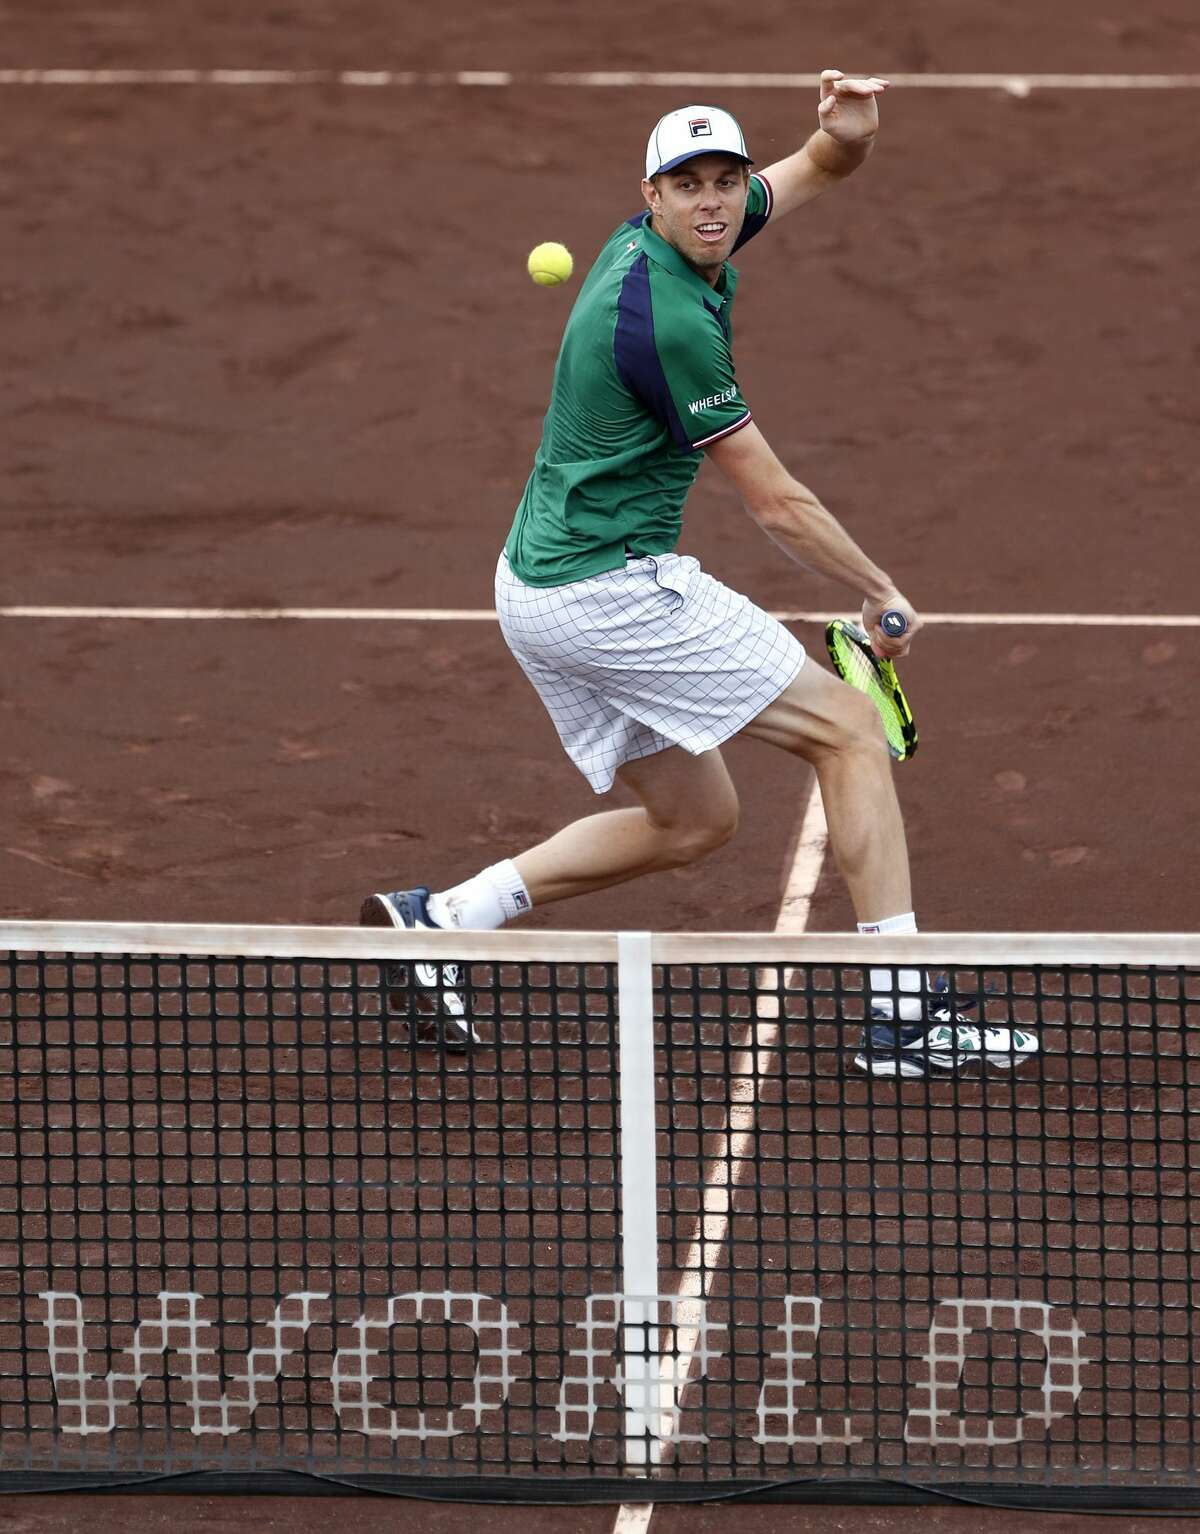 Sam Querrey plays doubles with Kevin Anderson against Brian Baker and Nikola Mektic at the 2017 Fayez Sarofim & Co. U.S. Men's Clay Court Championship at the River Oaks Country Club, Wednesday, April 12, 2017, in Houston. ( Karen Warren / Houston Chronicle )